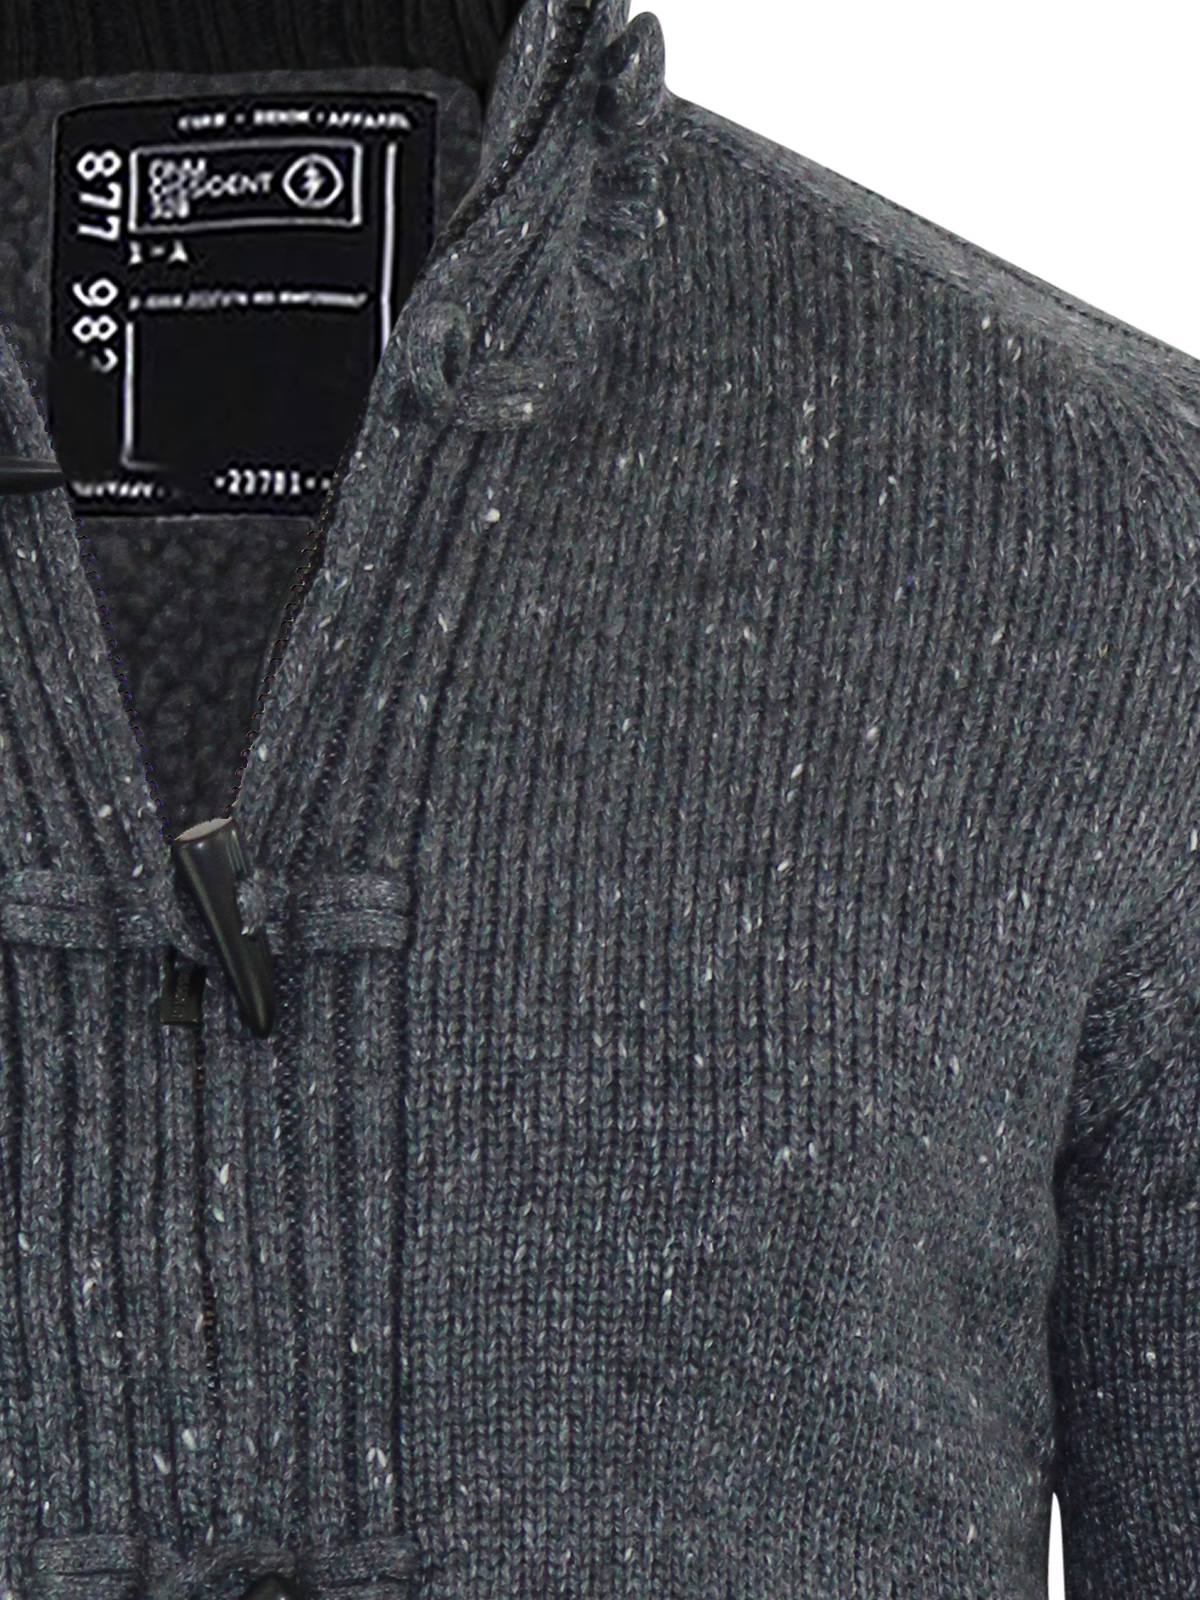 Mens Cardigan Jumper Dissident Lothian Sherpa Fleece Lined Zip Up ...